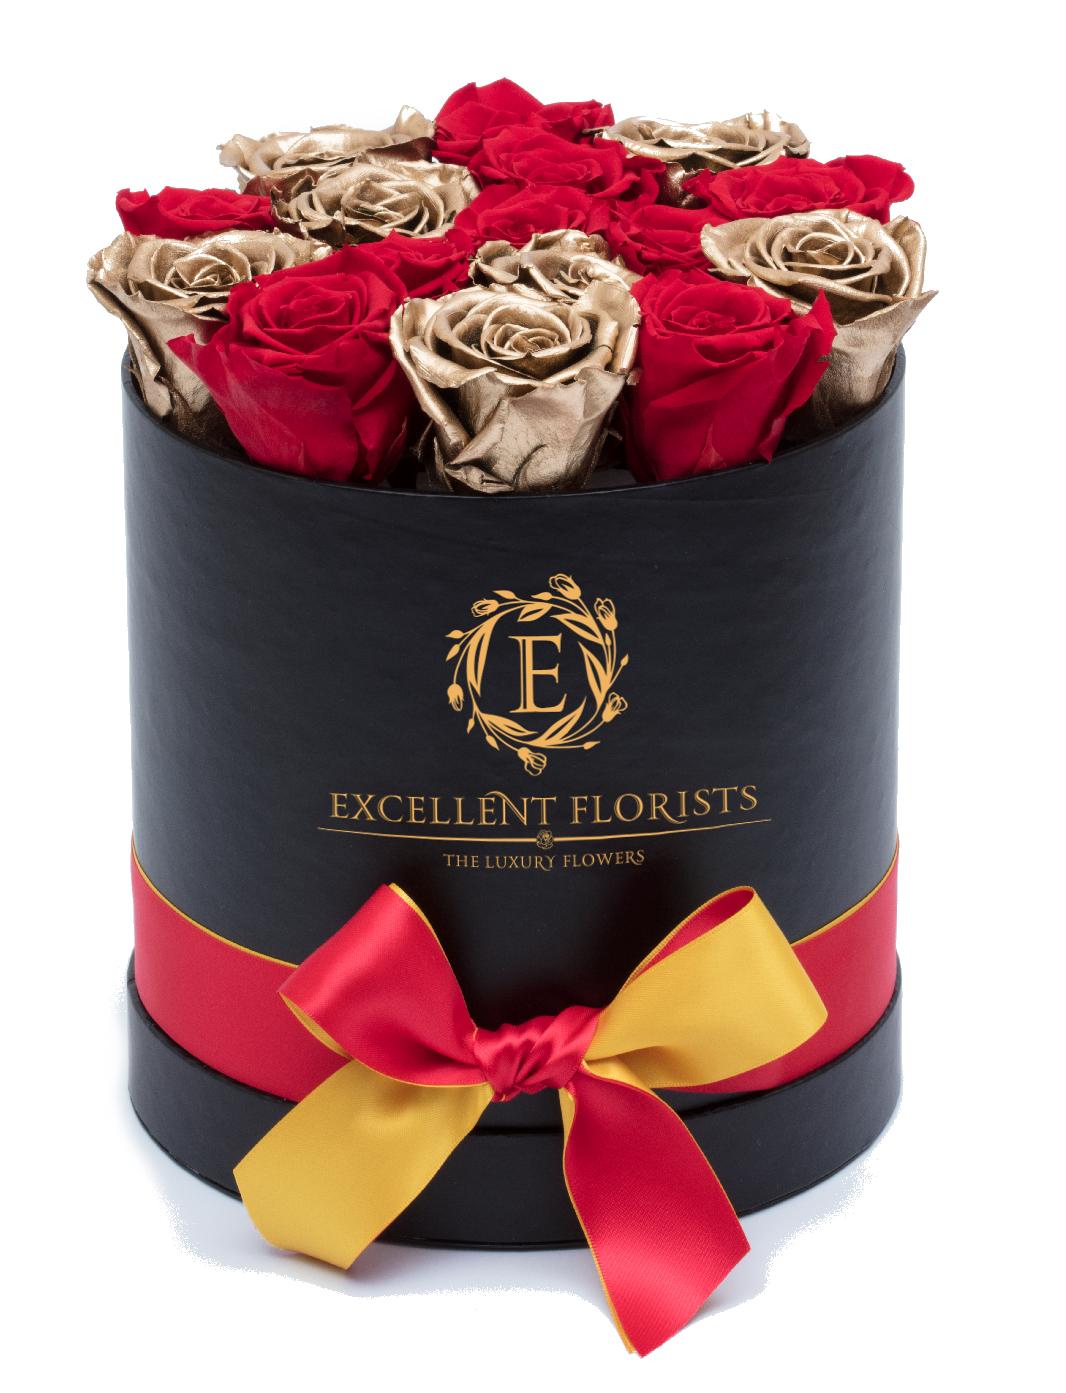 Gold & Red Mix Preserved Roses - Excellent Florists